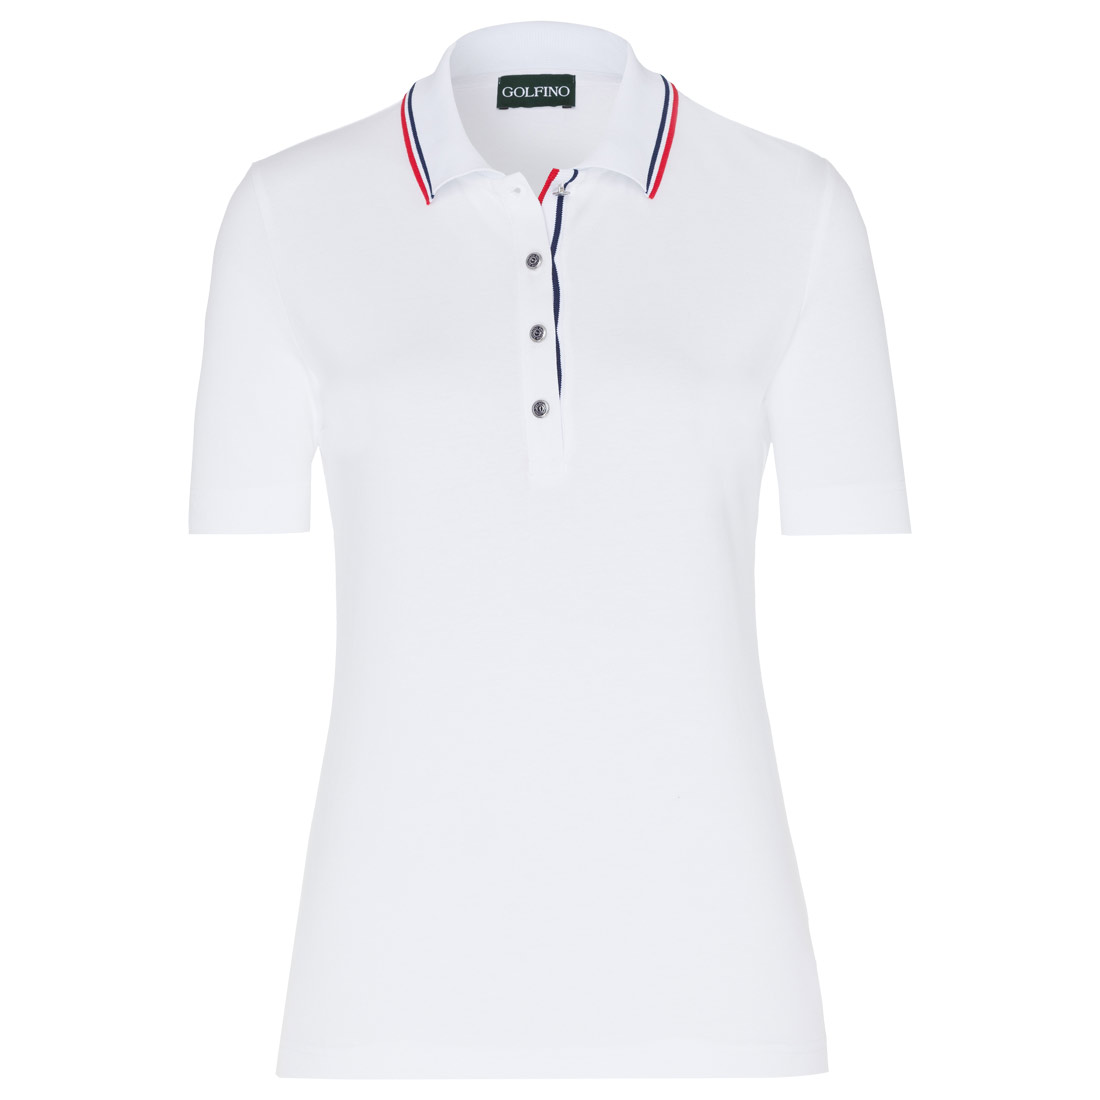 Ladies' polo with contrast elements